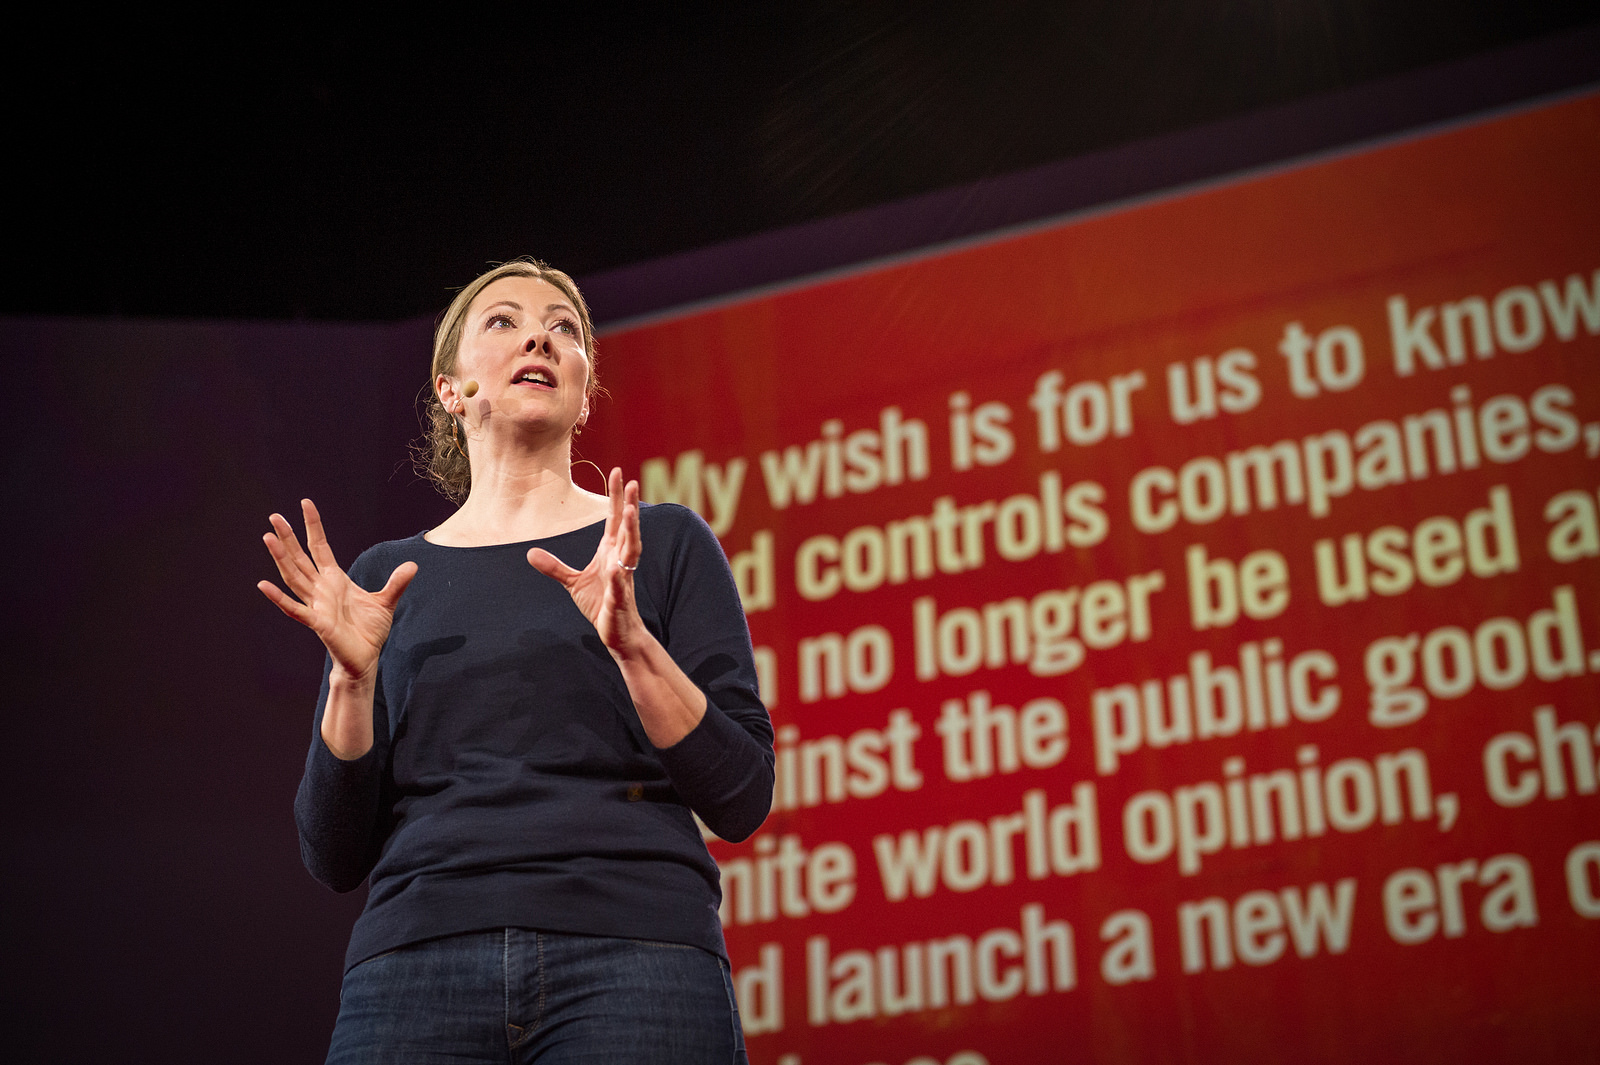 TED Prize winner Charmian Gooch wished to end anonymous companies at TED2014 and gave the audience an in-depth look at how anonymity feeds corruptuon. Yesterday's release of The Panama Papers made people all over the world feel this. Photo: James Duncan Davidson/TED